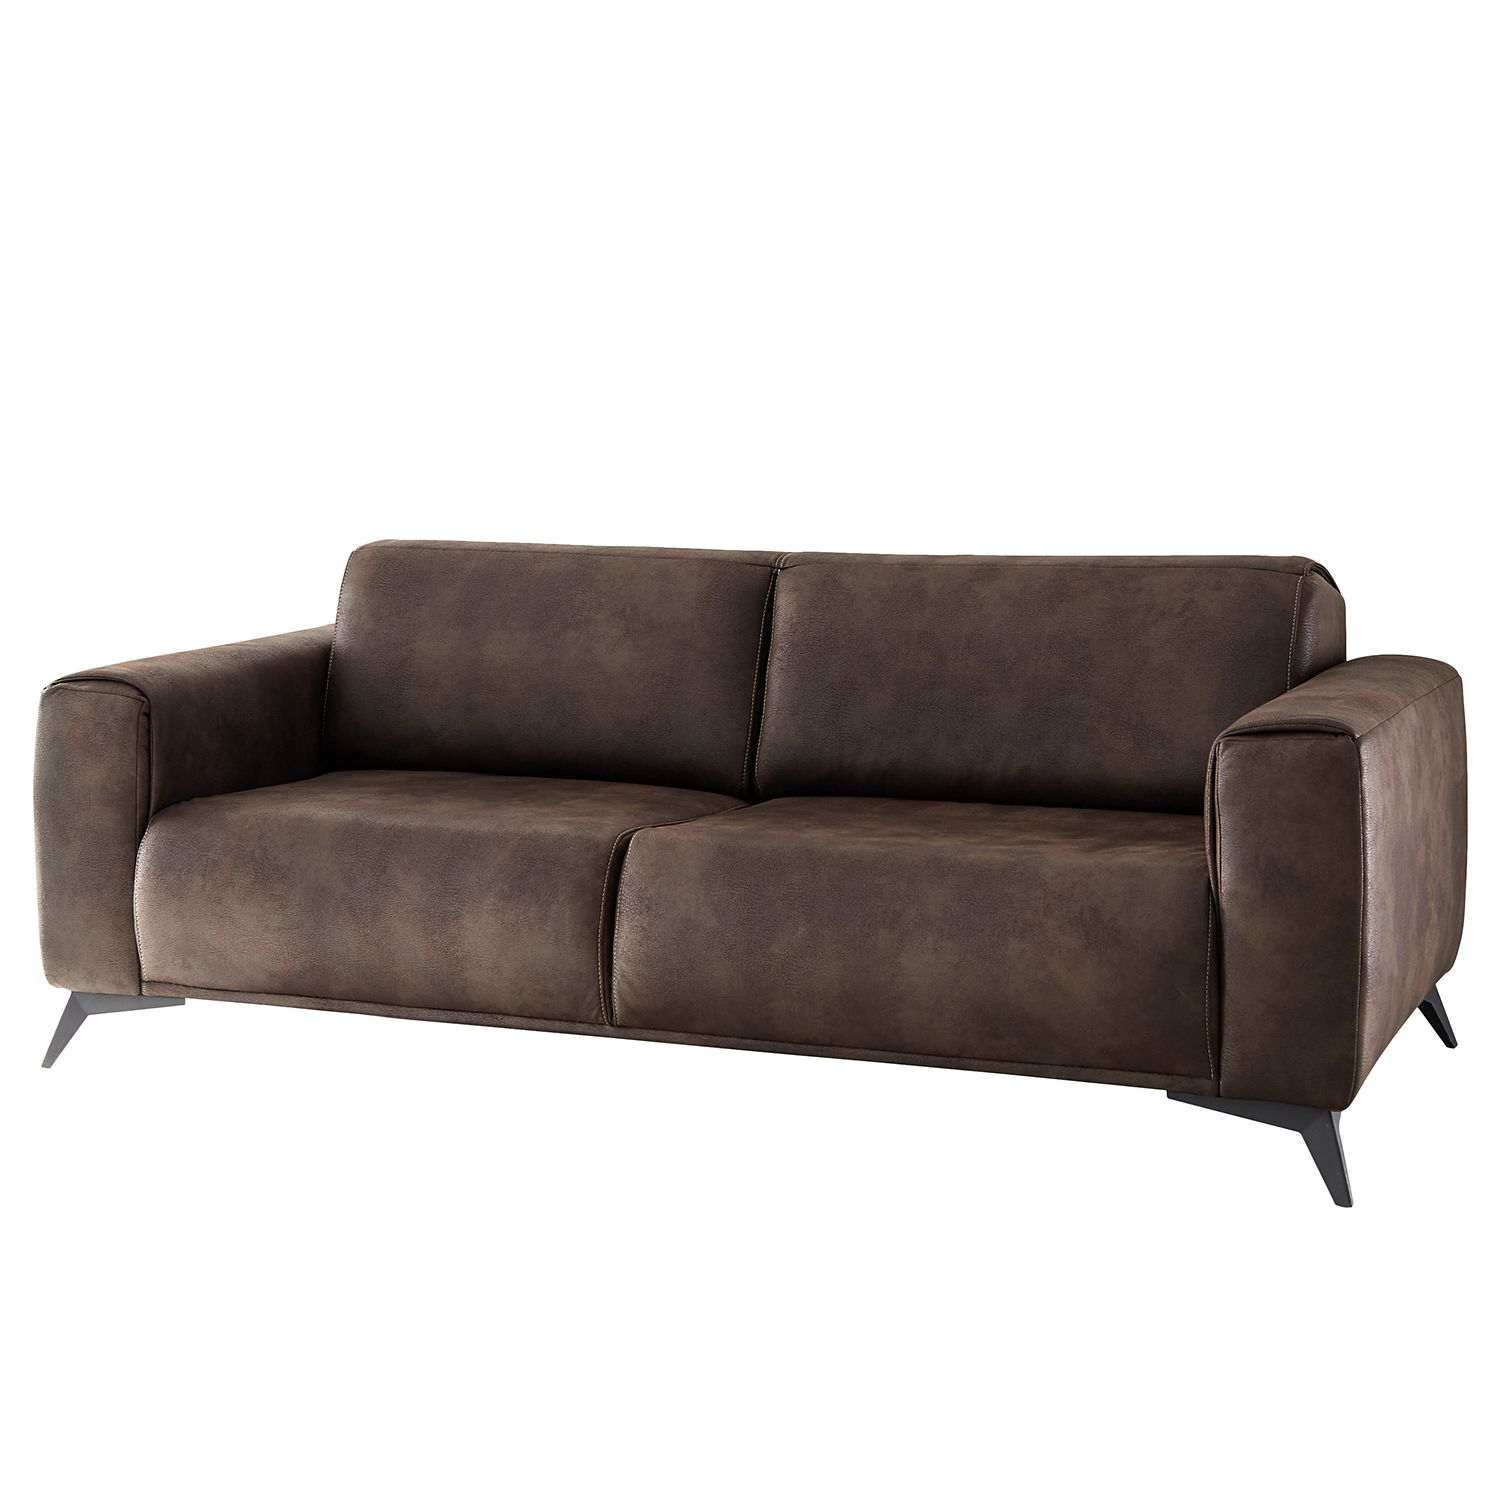 Ecksofa Energy Sofa Churchill 3 Sitzer In 2019 Products Sofa Kolonialstil